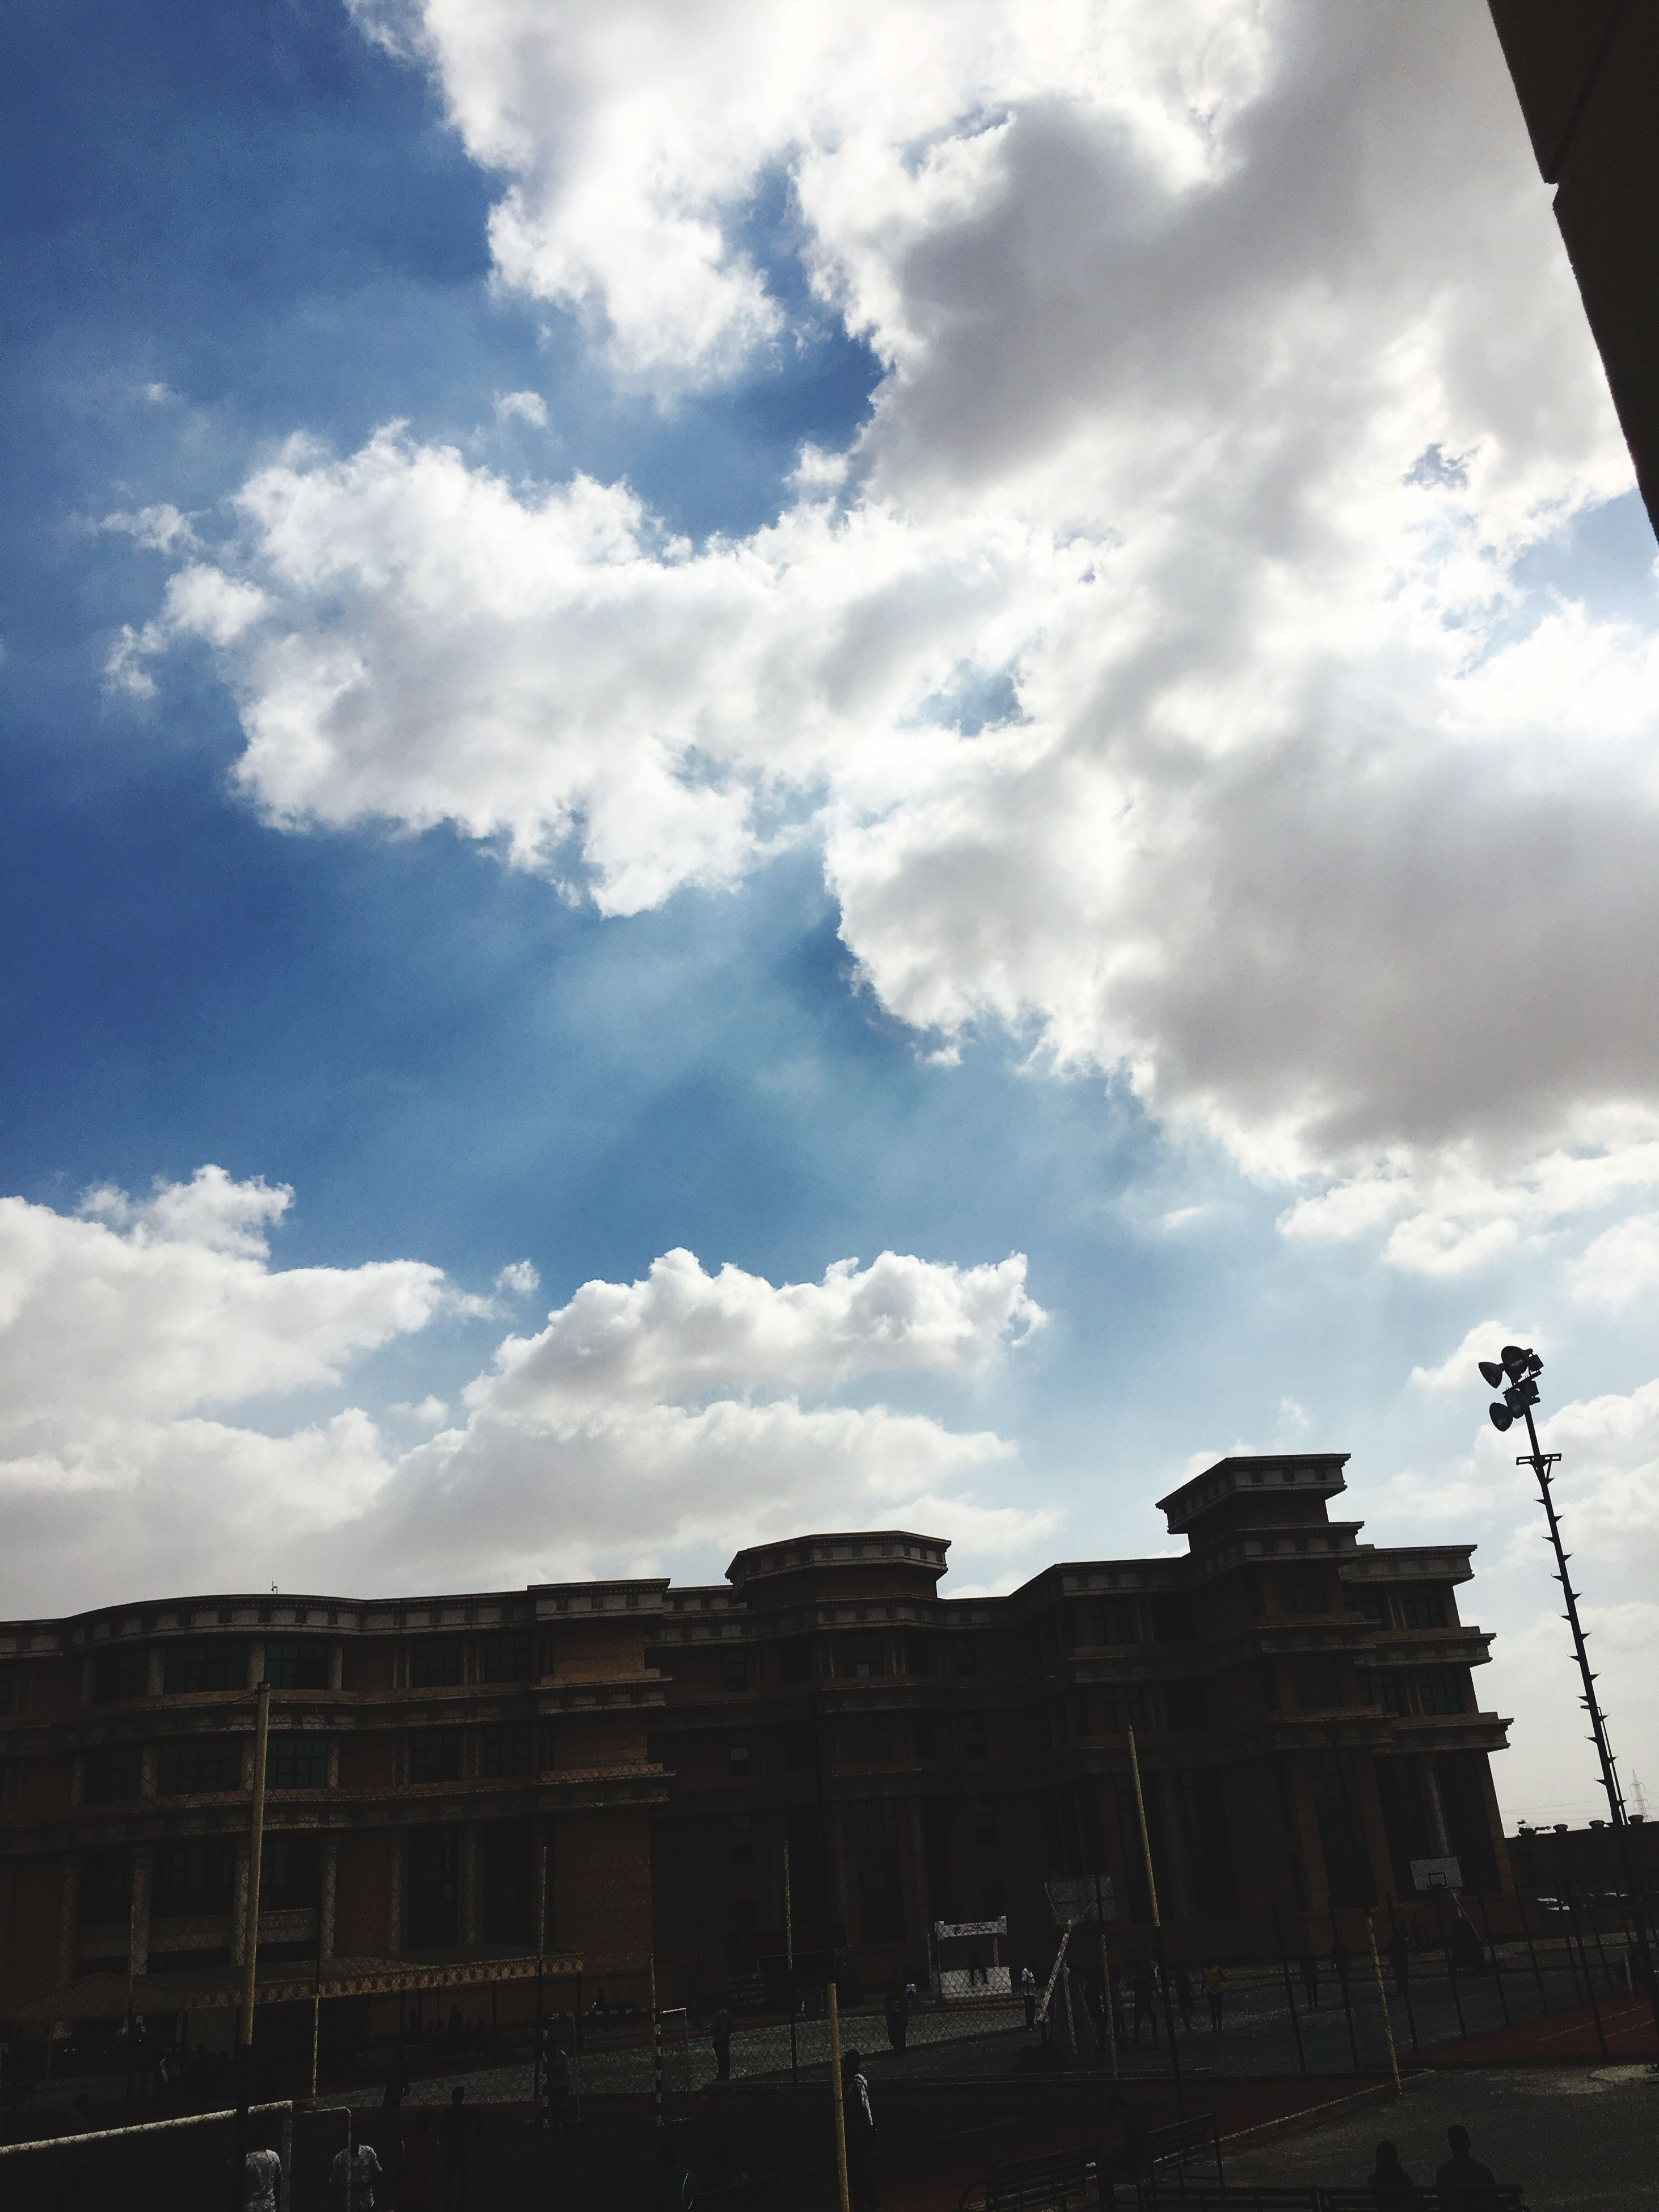 cloud - sky, sky, architecture, built structure, history, building exterior, no people, outdoors, day